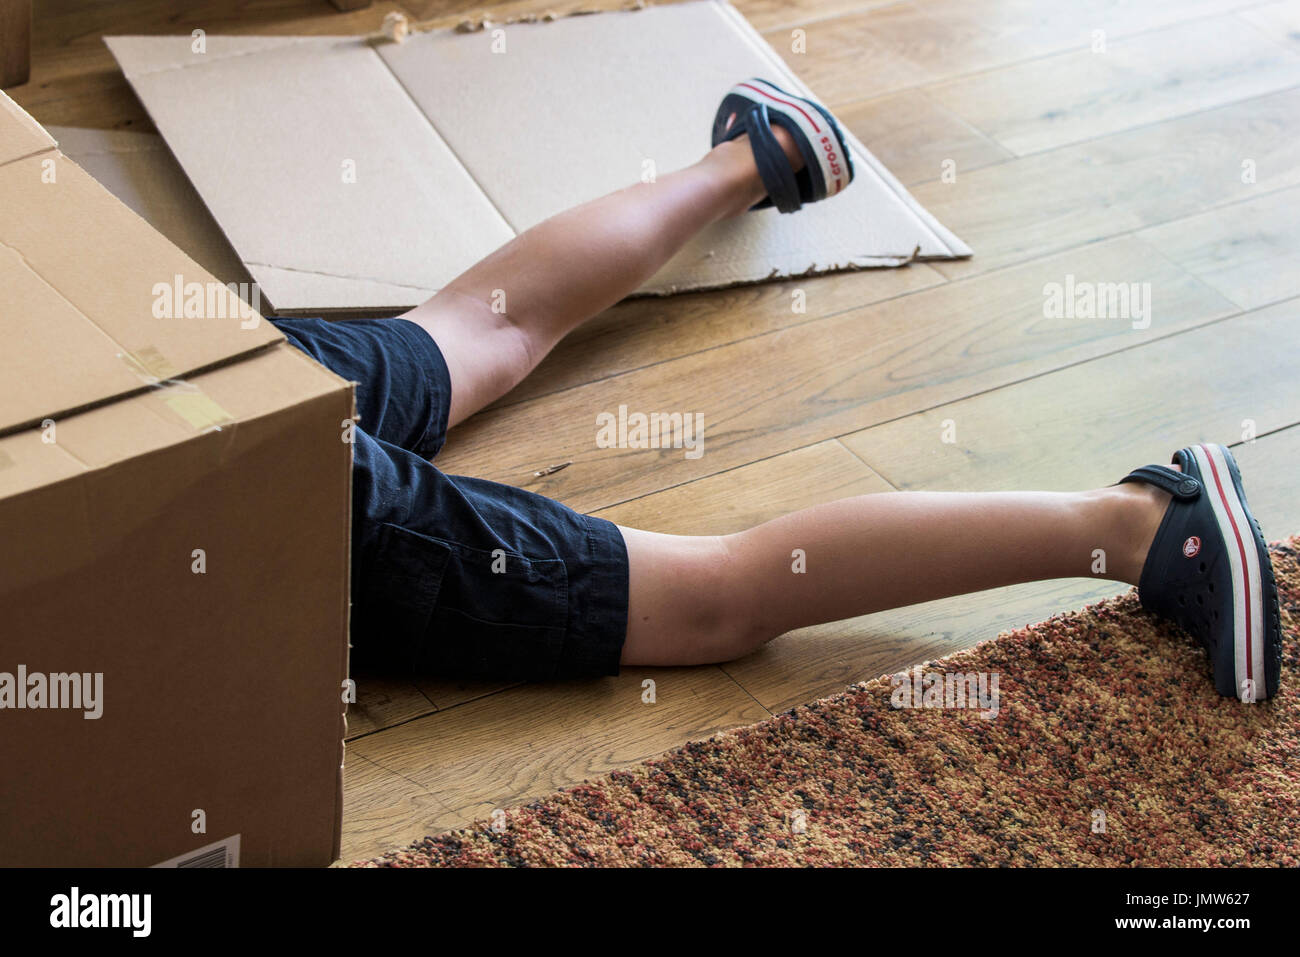 The legs of a young boy sticking out of a cardboard box. - Stock Image